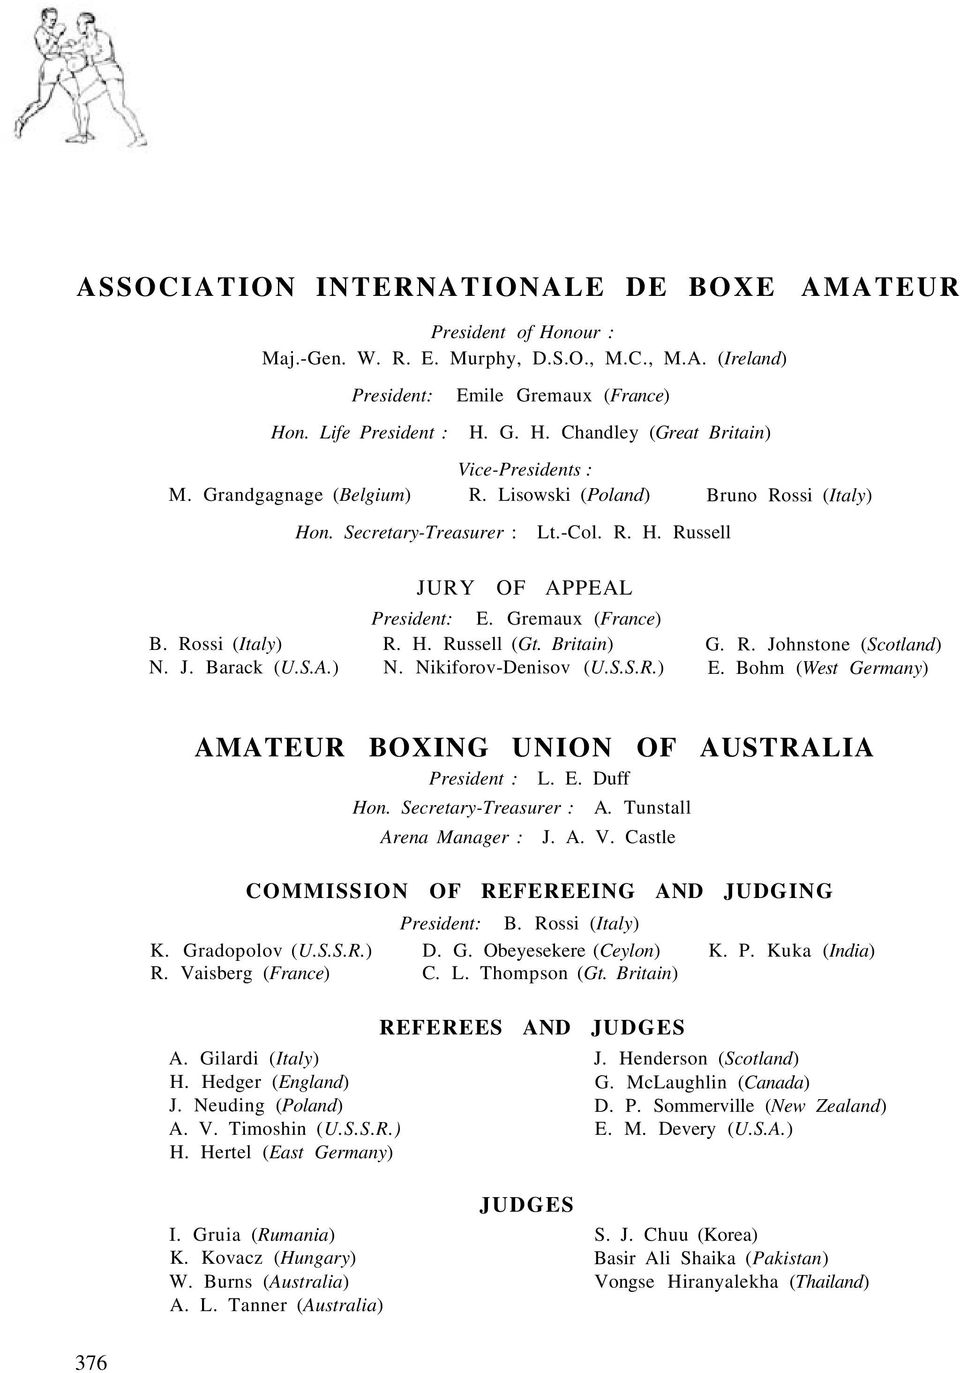 Britain) N. Nikiforov-Denisov () G. R. Johnstone (Scotland) E. Bohm (West Germany) AMATEUR BOXING UNION OF AUSTRALIA President : L. E. Duff COMMISSION K. Gradopolov () R. Vaisberg () A. Gilardi () H.